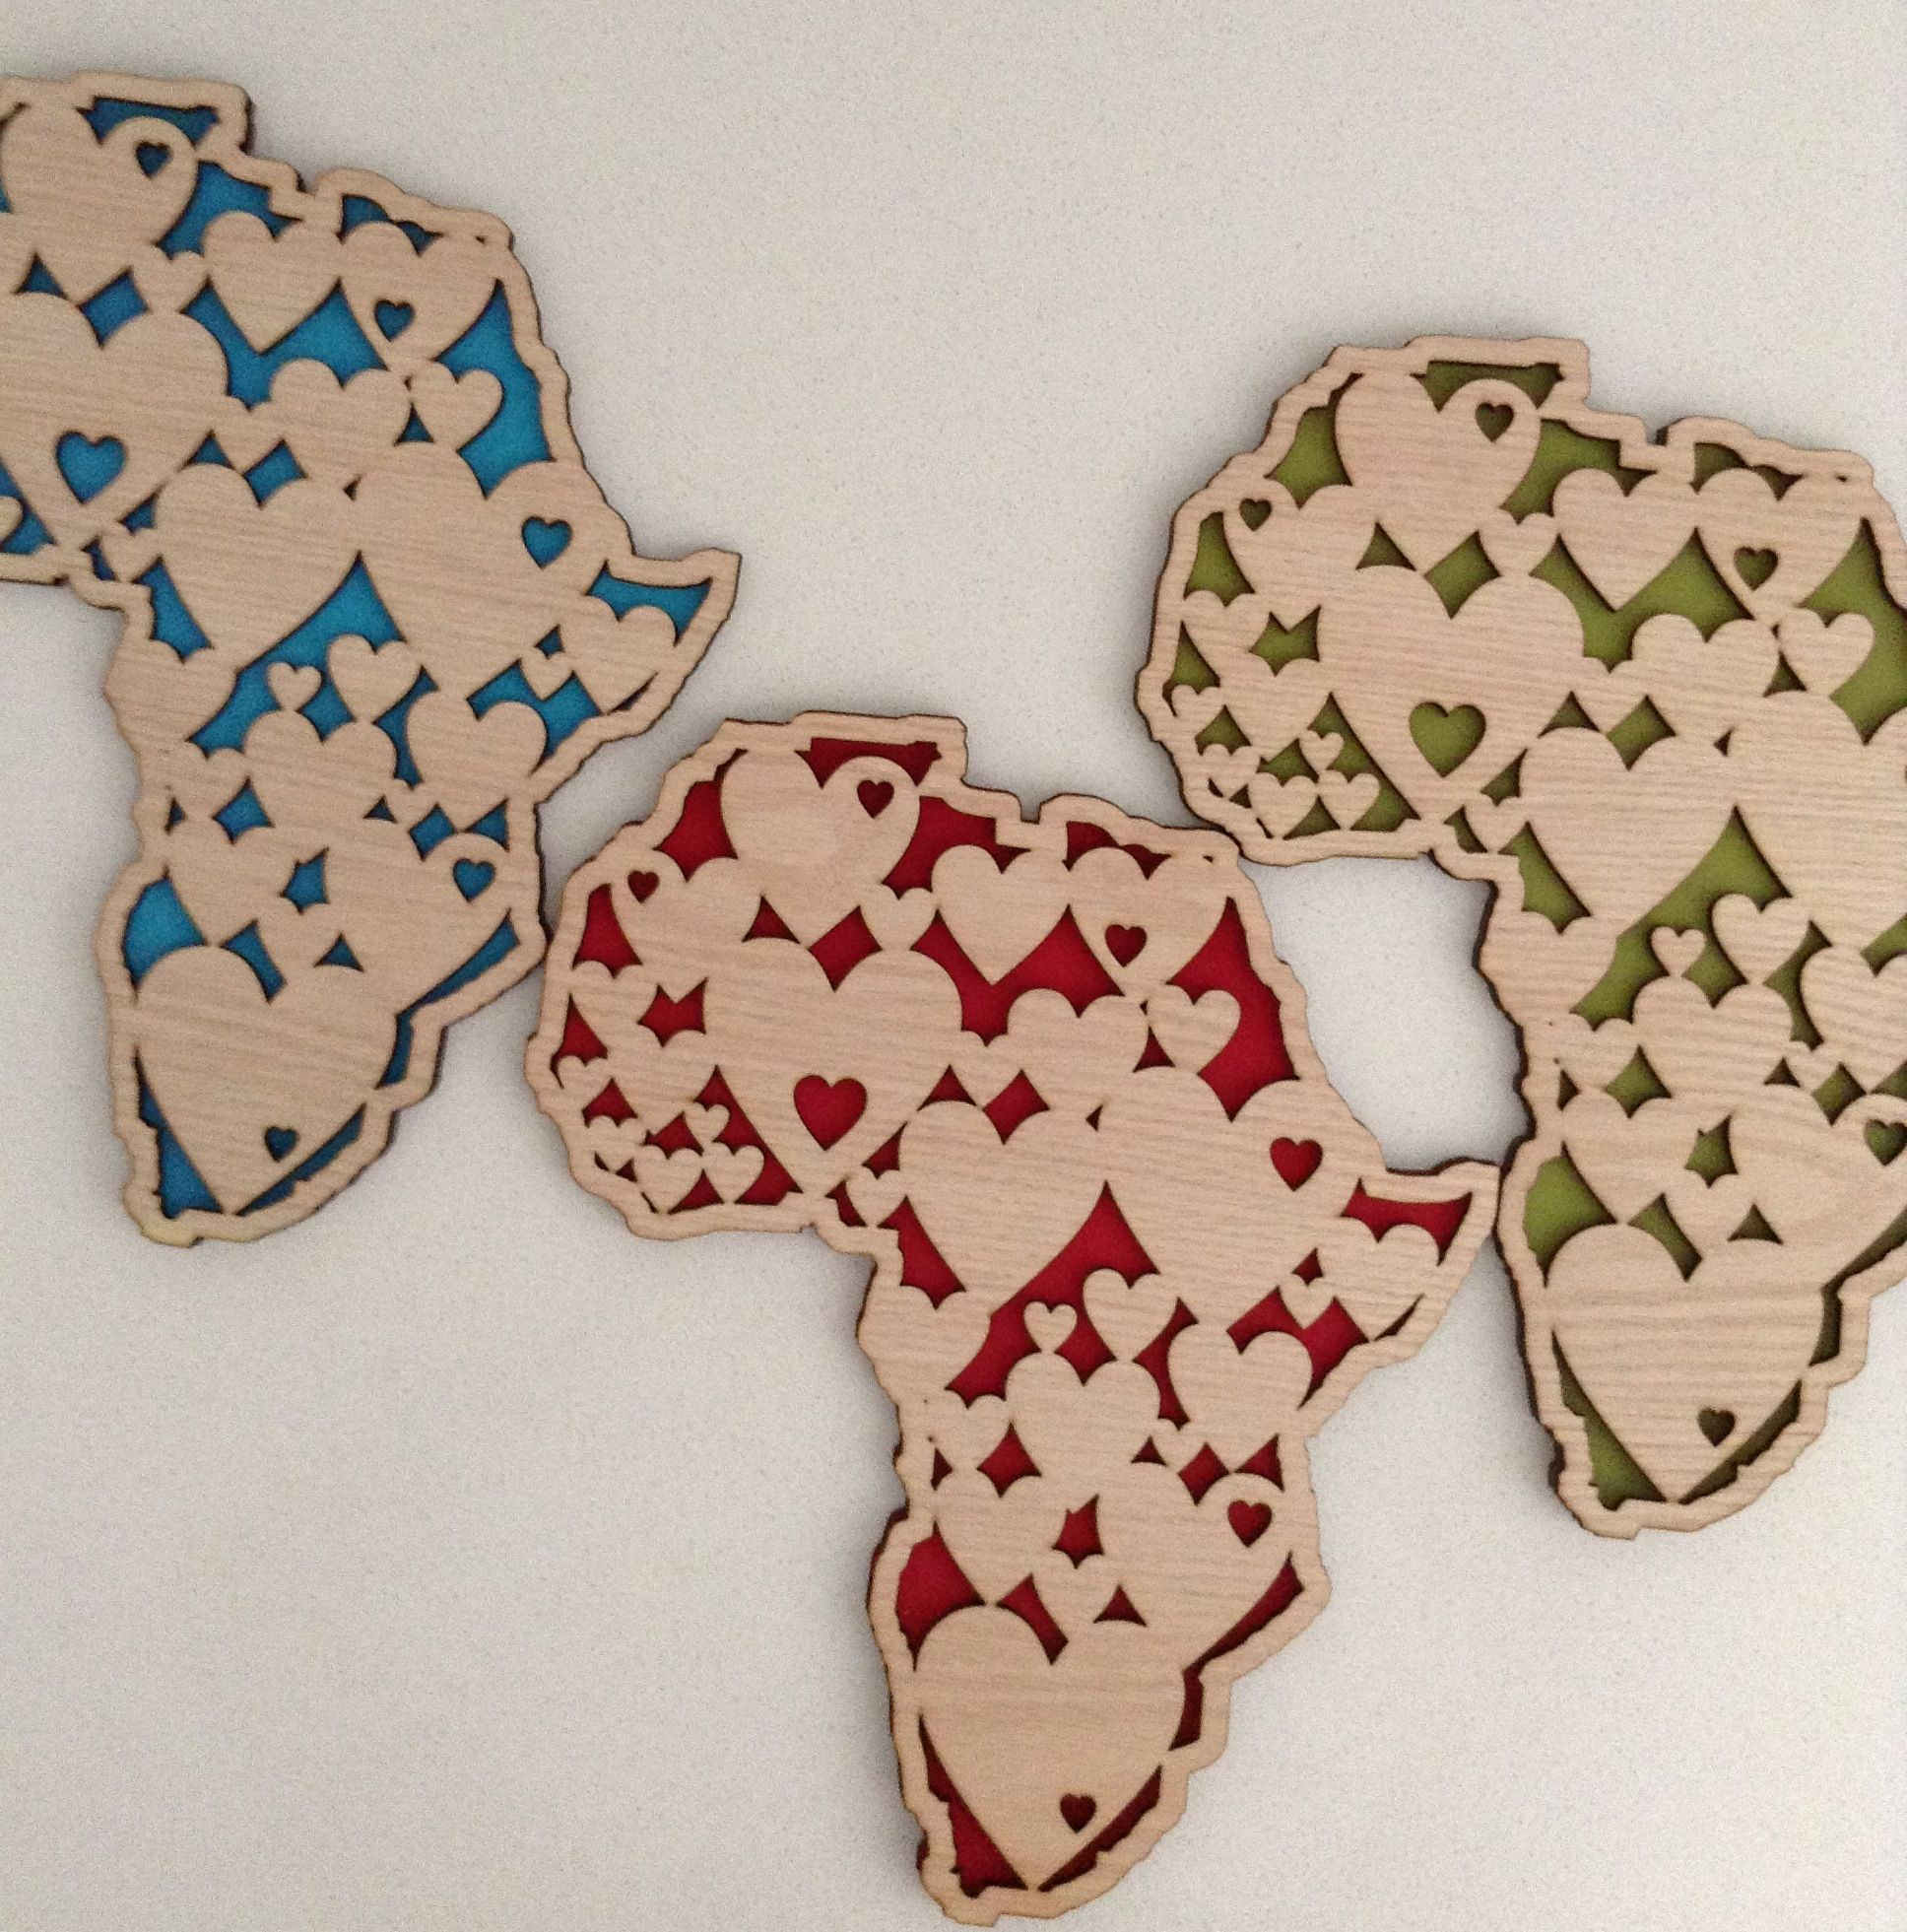 African Wooden Wall Art What 39s Cutting Wall Art Africa Hearts Laser Cut What